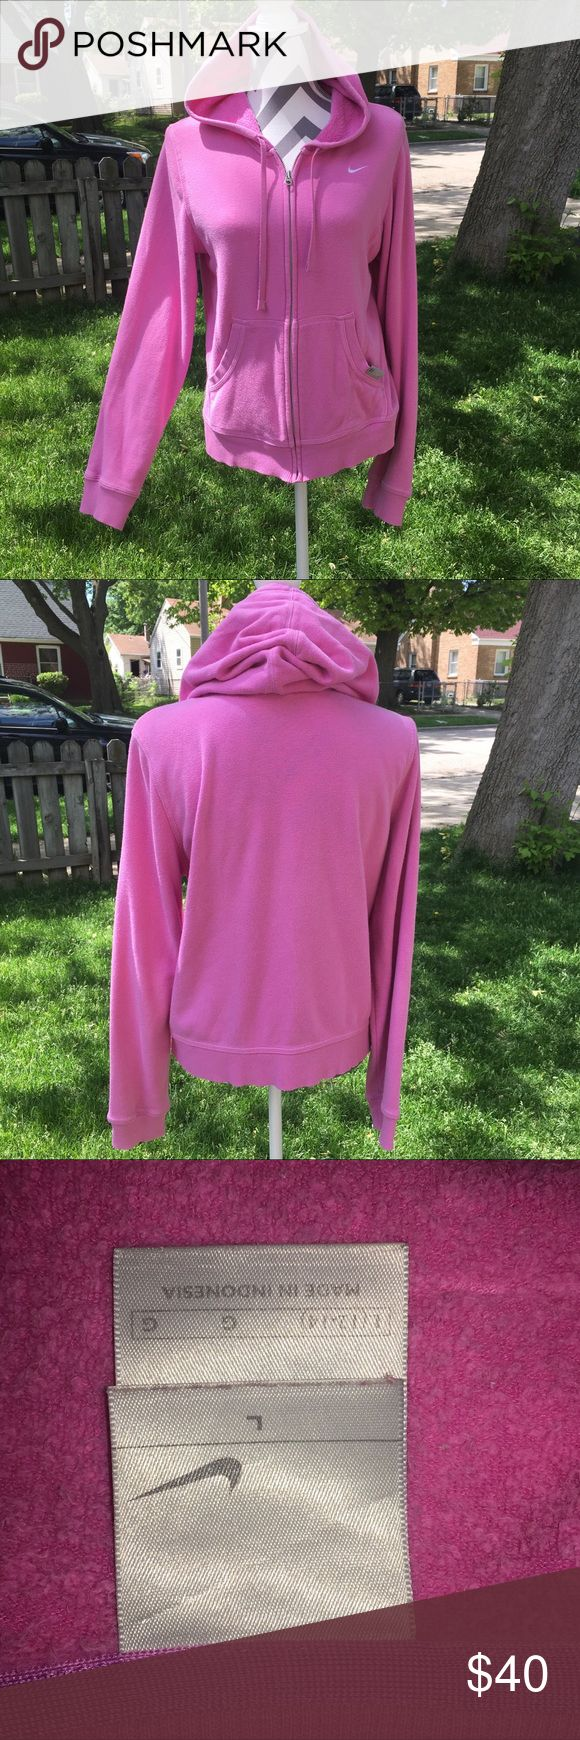 Nike women zip up sweater Hot in pink zip 🤐 up sweater by Nike. Women sweater in excellent condition no stains. Zipper works great. Size is Large color is pink. Nike Sweaters